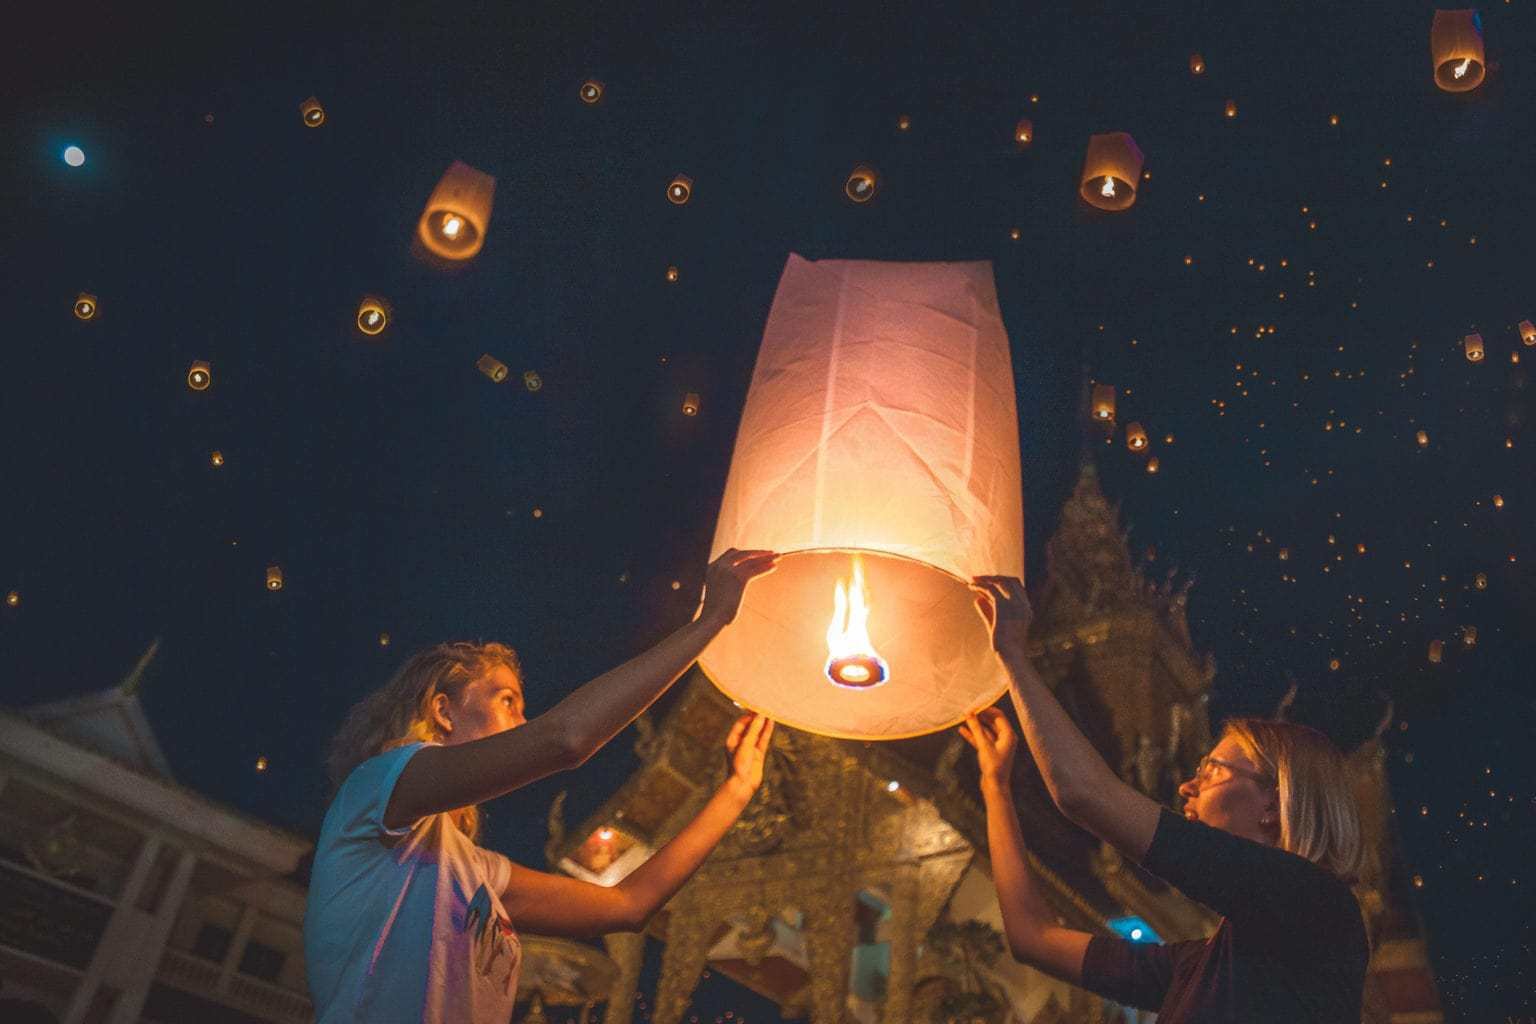 Holding a wishballoon/lantern during Chiang Mai's lantern festival Yi Peng, in front of a temple, with many lanterns lighting up the sky